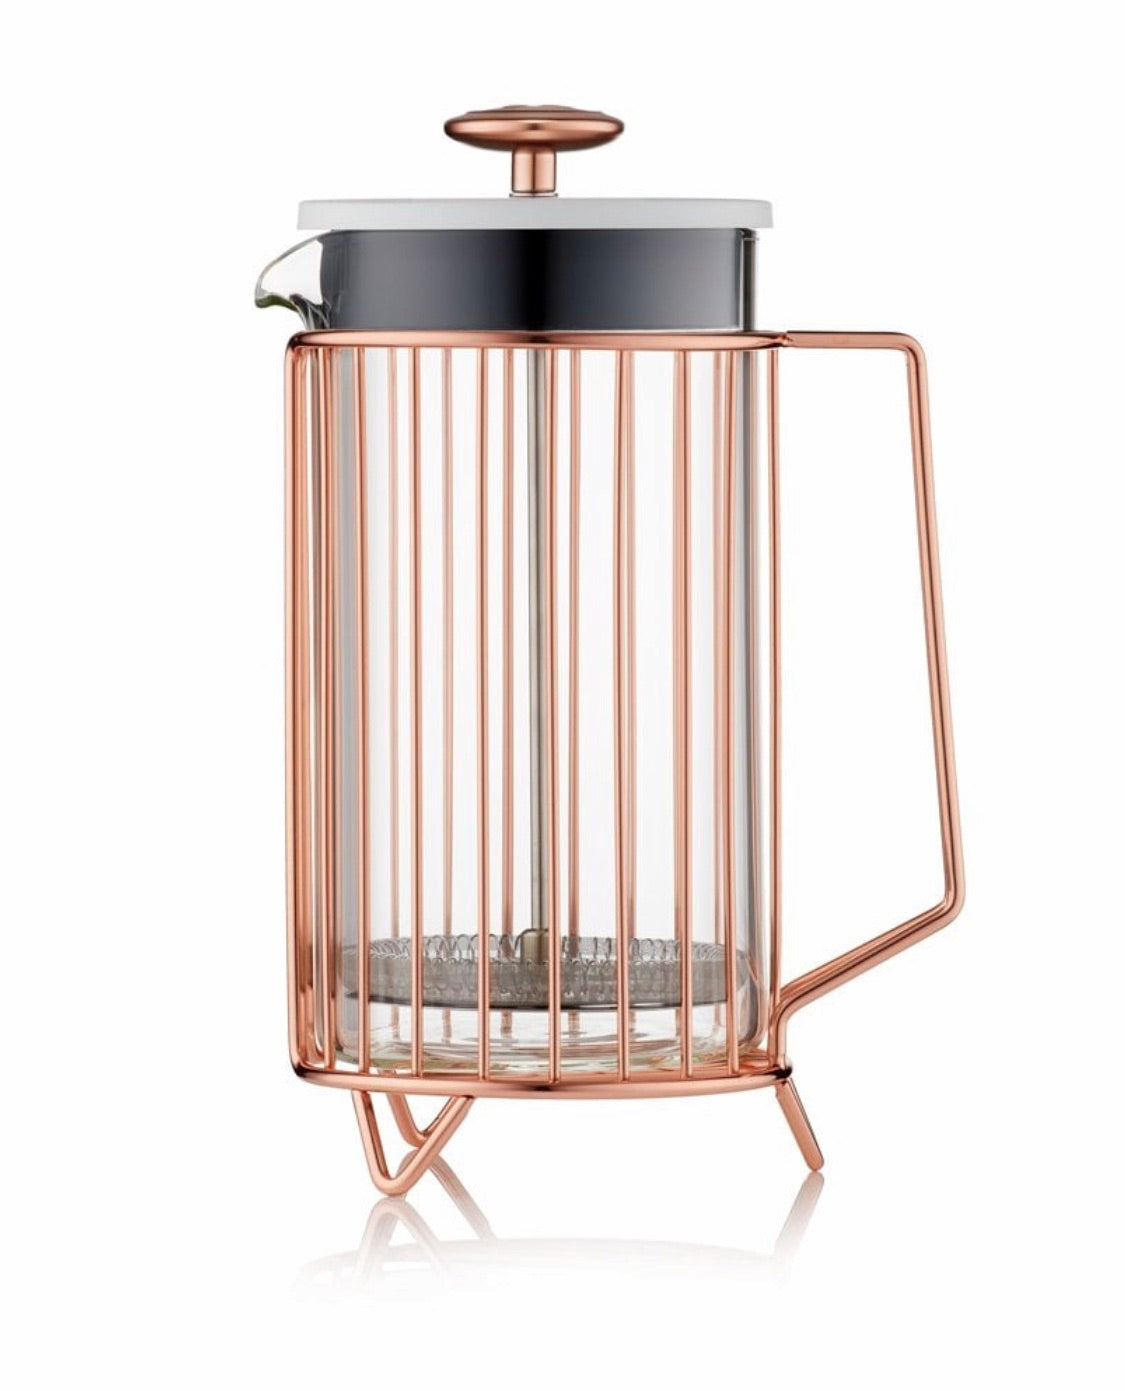 Barista & Co. Corral Coffee Press - Copper